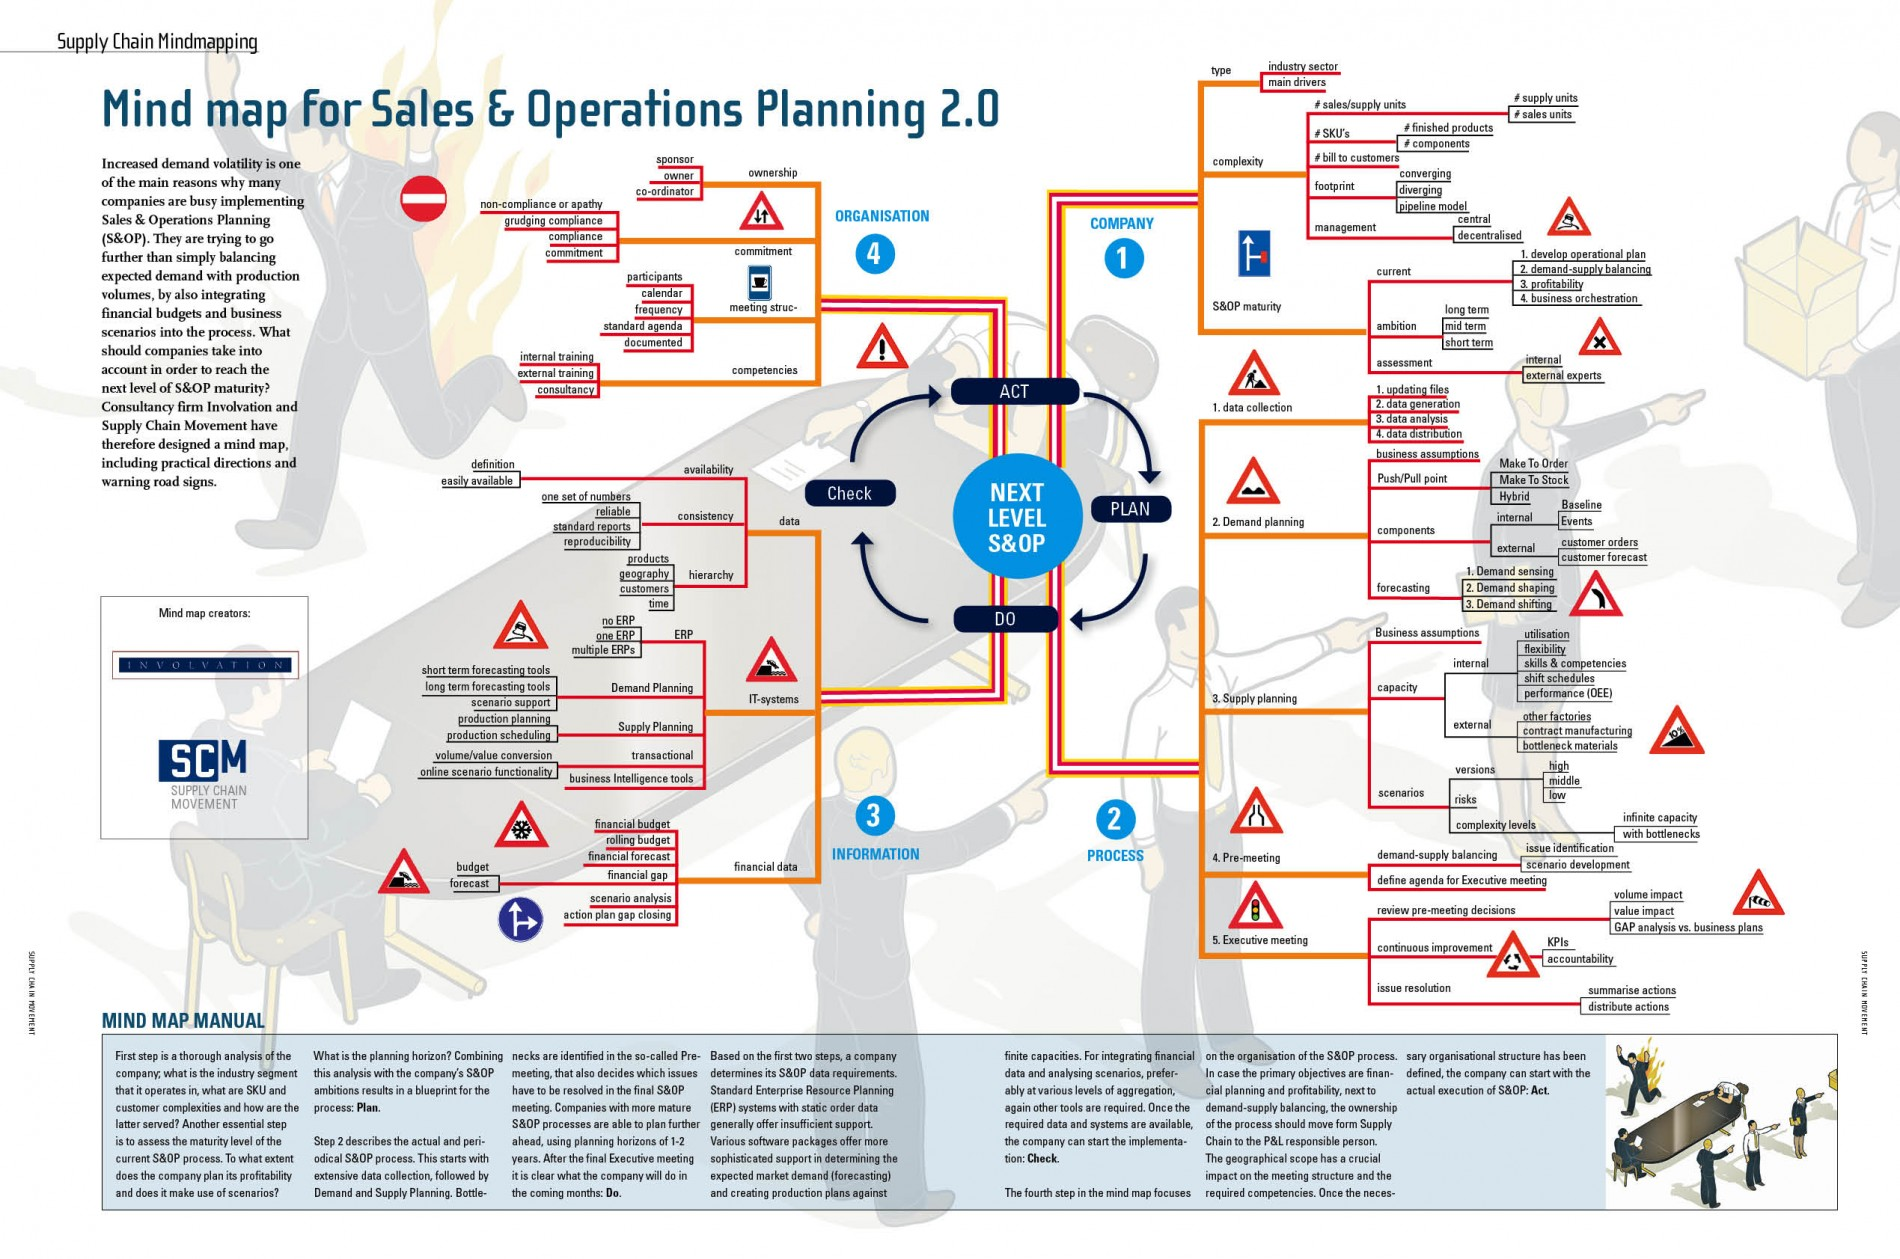 Mind Map for Sales & Operations Planning 2 0 - Supply Chain